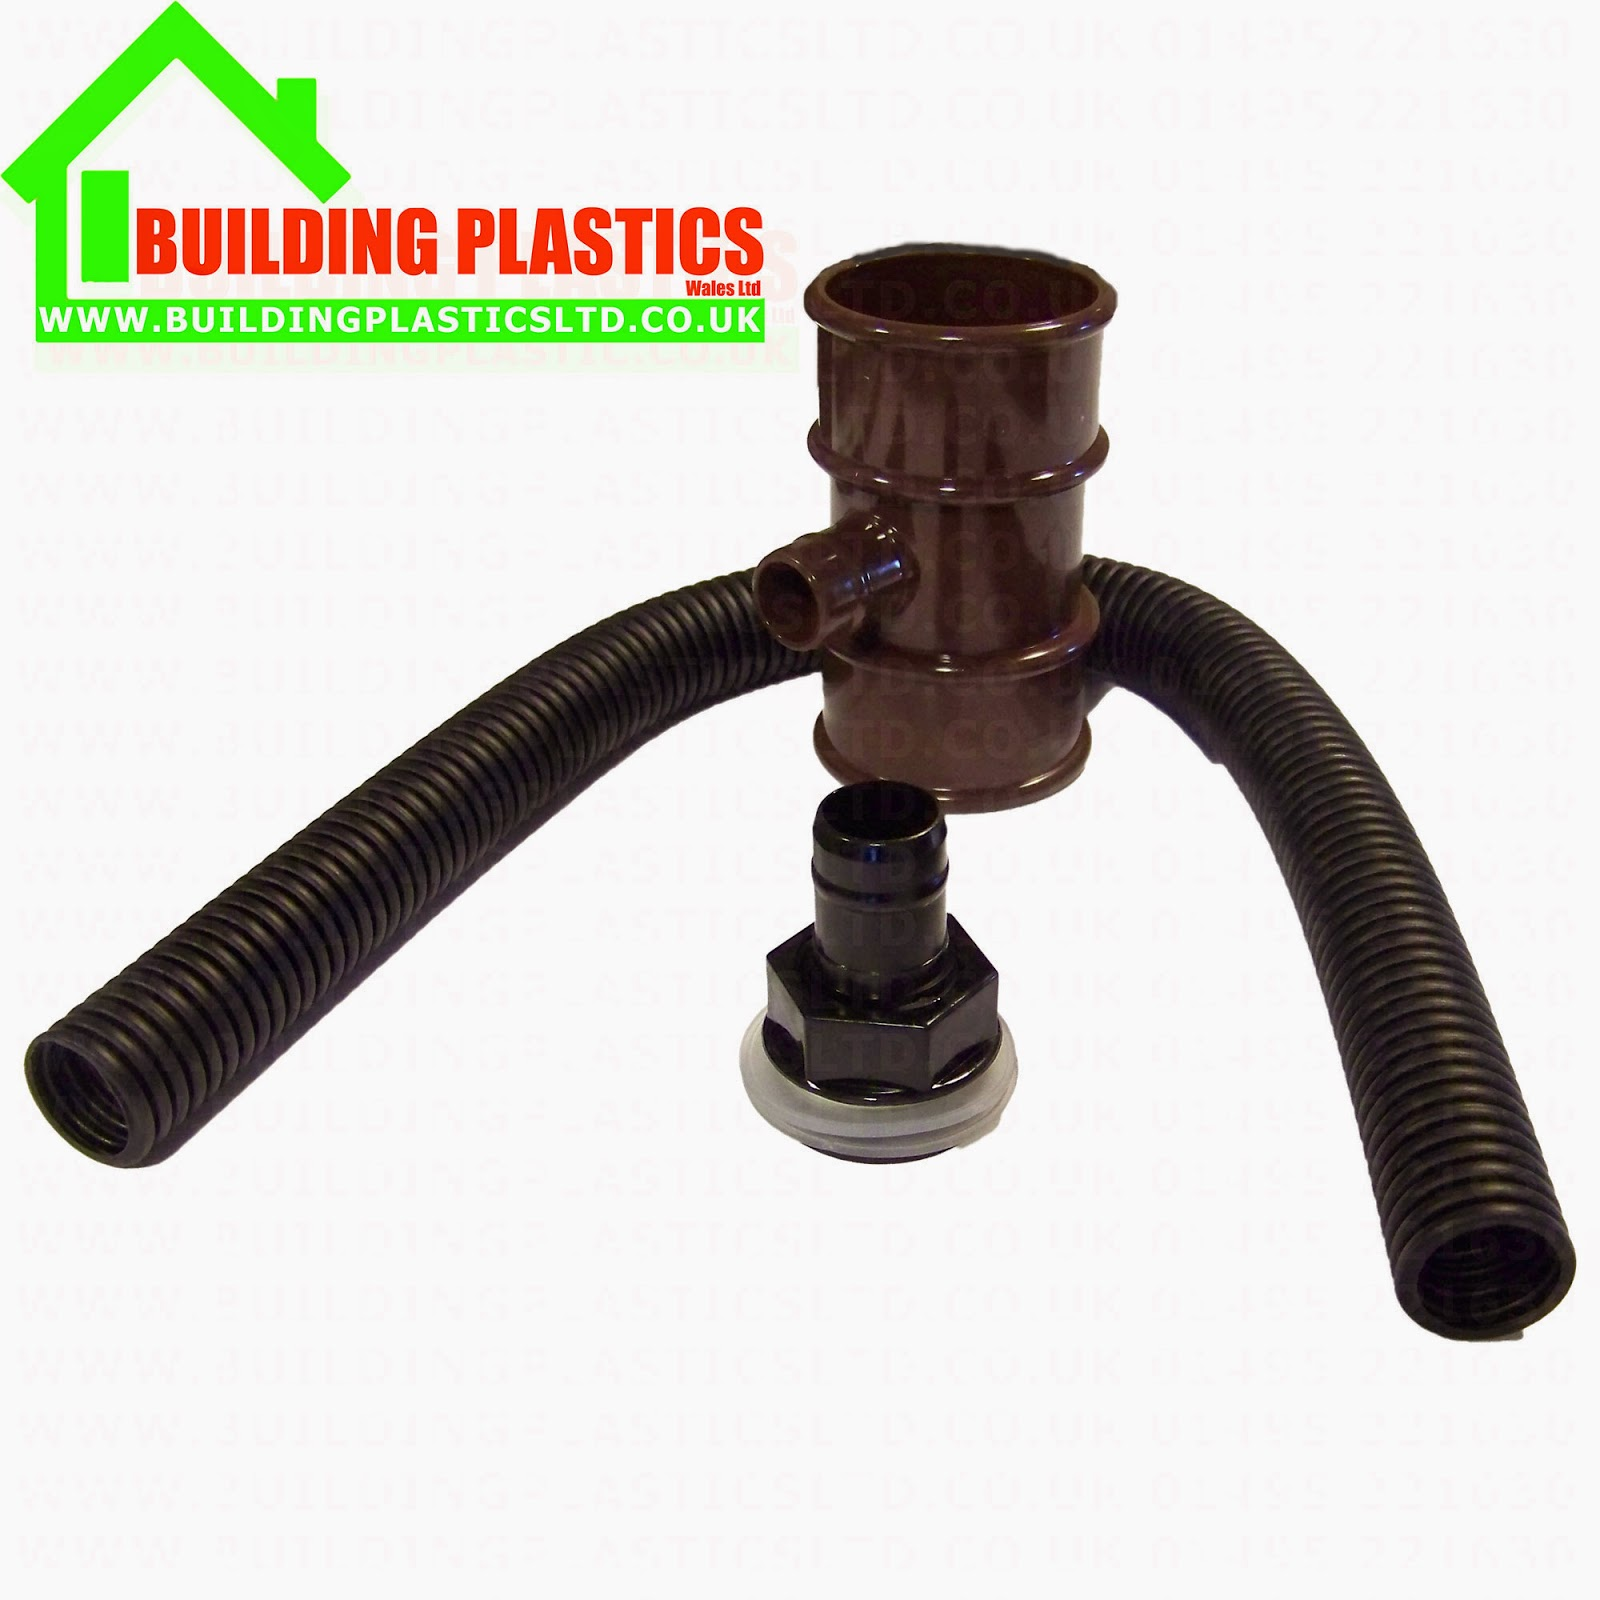 Floplast rainwater diverter for 50mm pipe